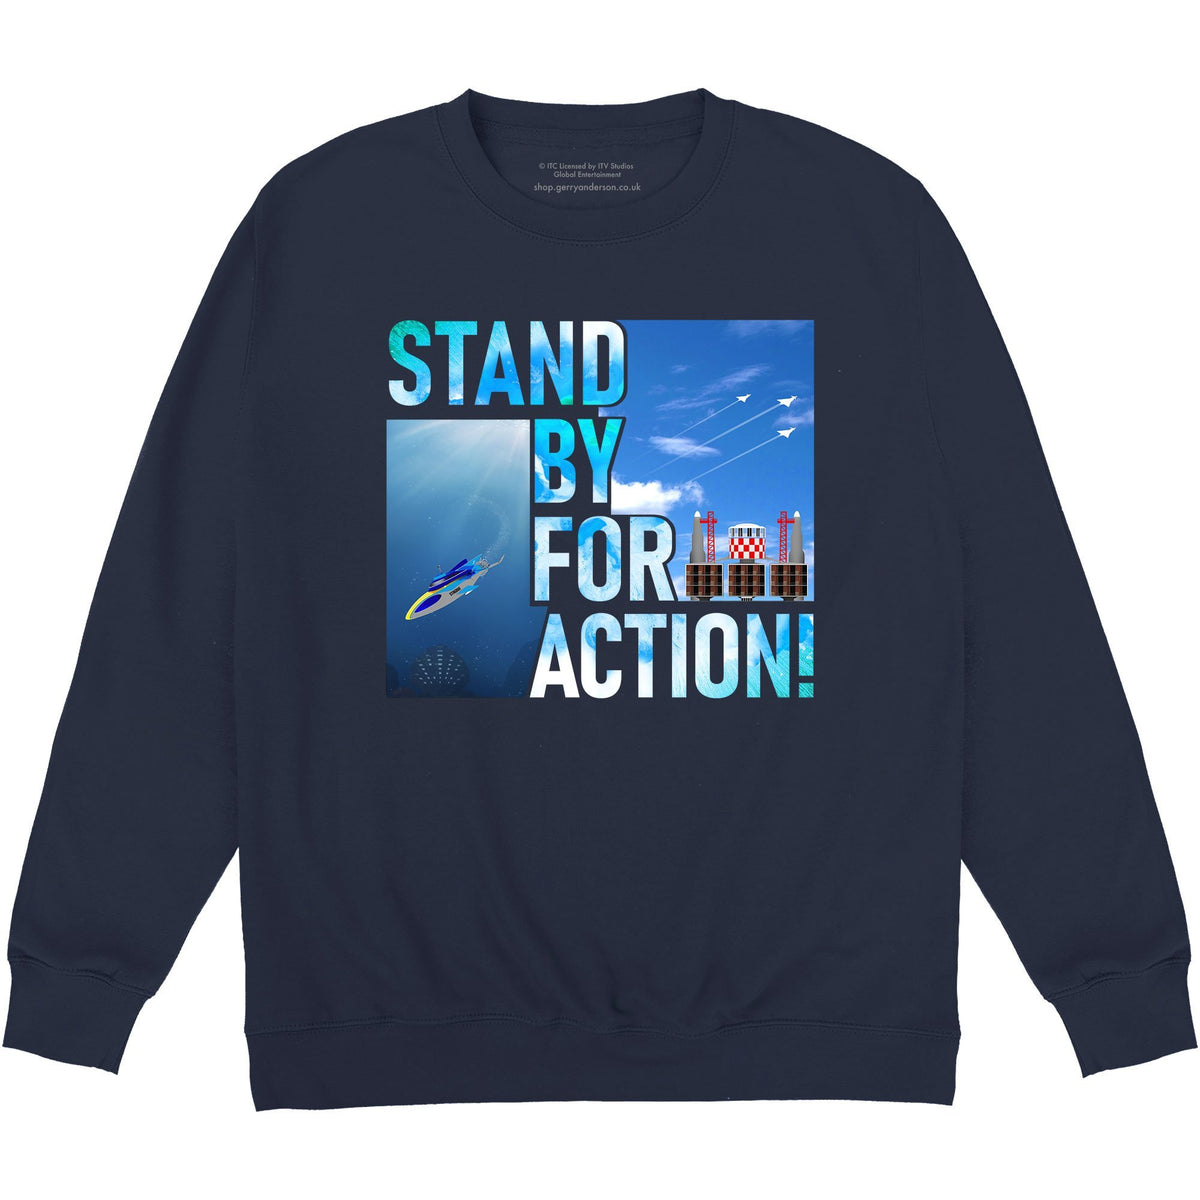 Stingray - Stand By For Action Sweatshirt [Official & Exclusive] - The Gerry Anderson Store